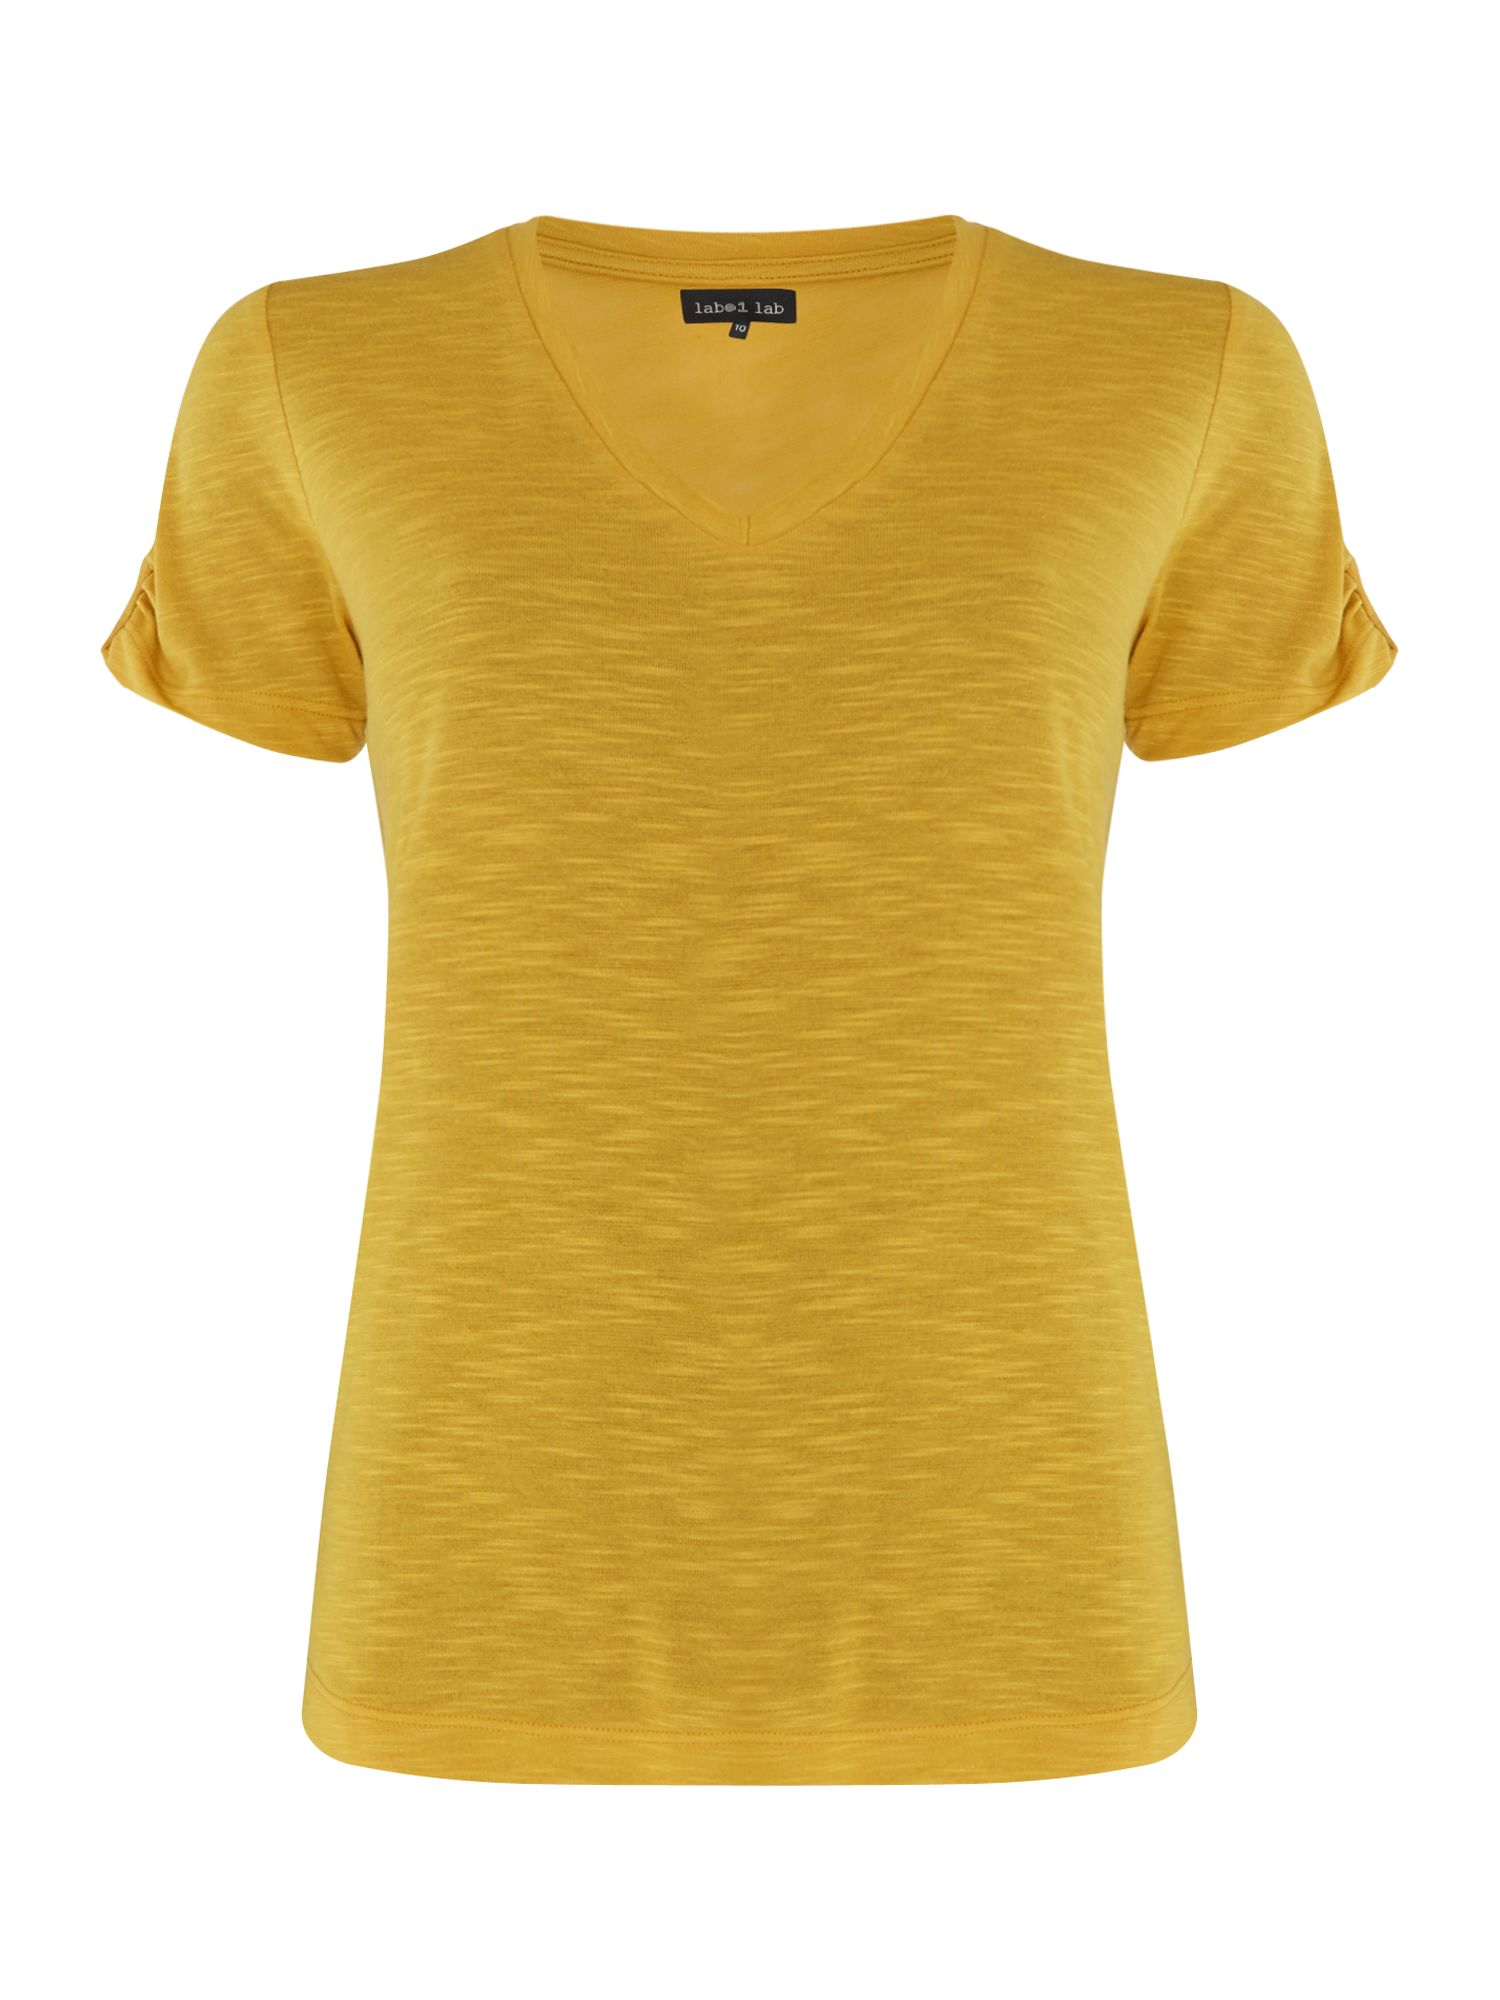 Label Lab Bea tab detail tee, Chartreuse